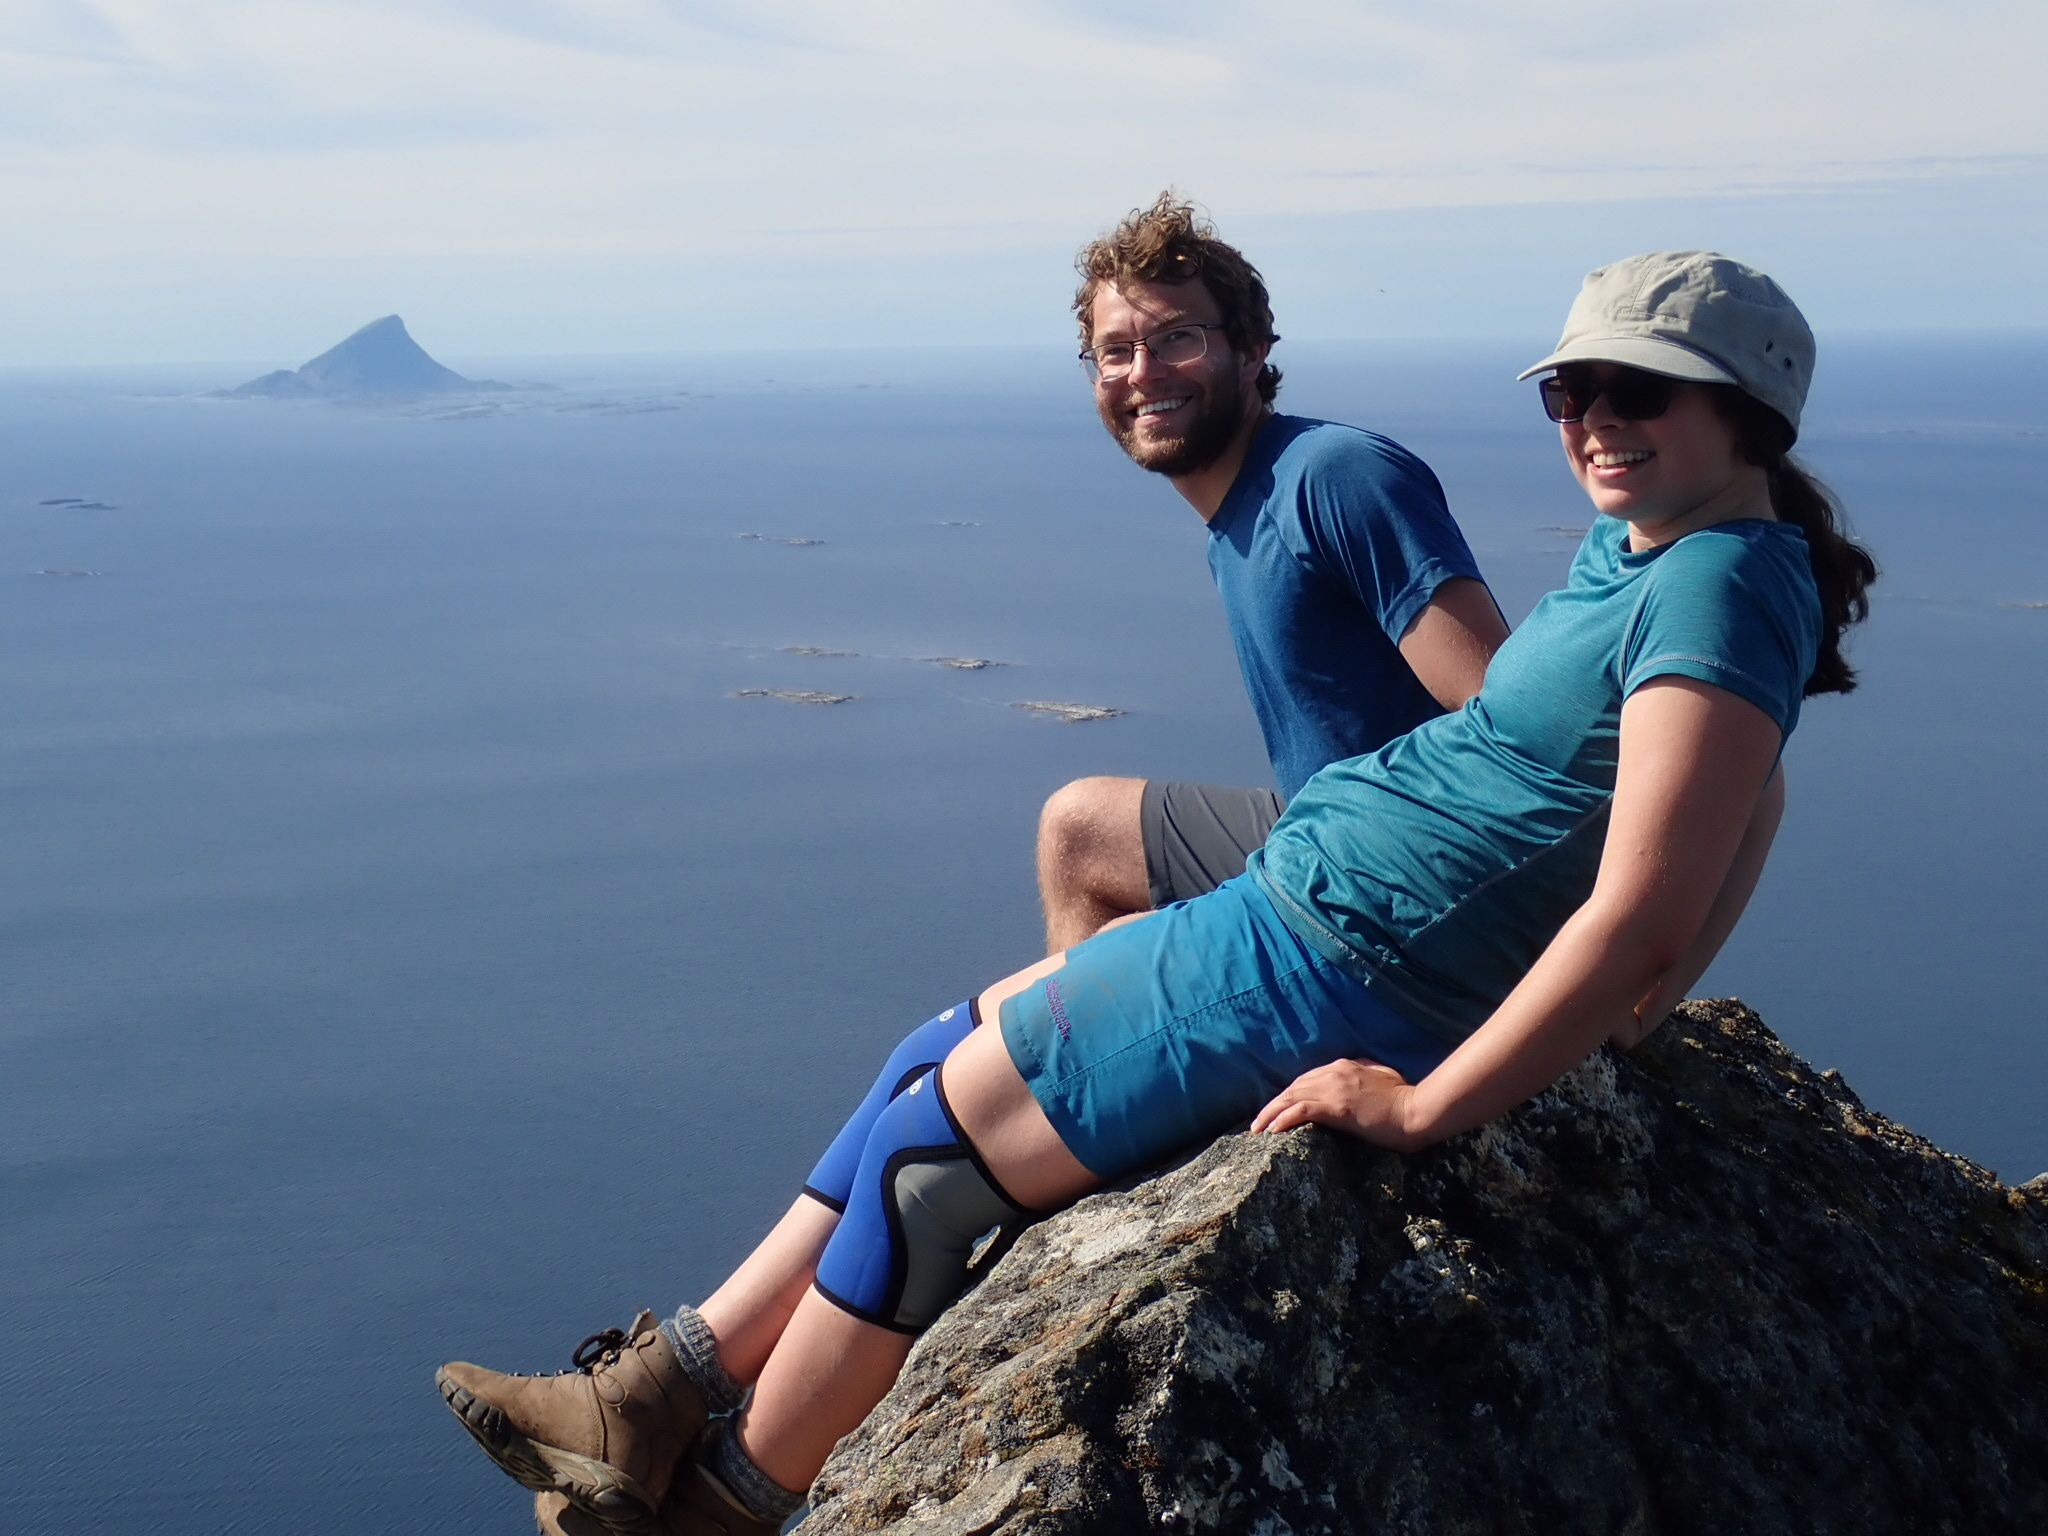 Callum and Amy atop Hestmona, Helgeland